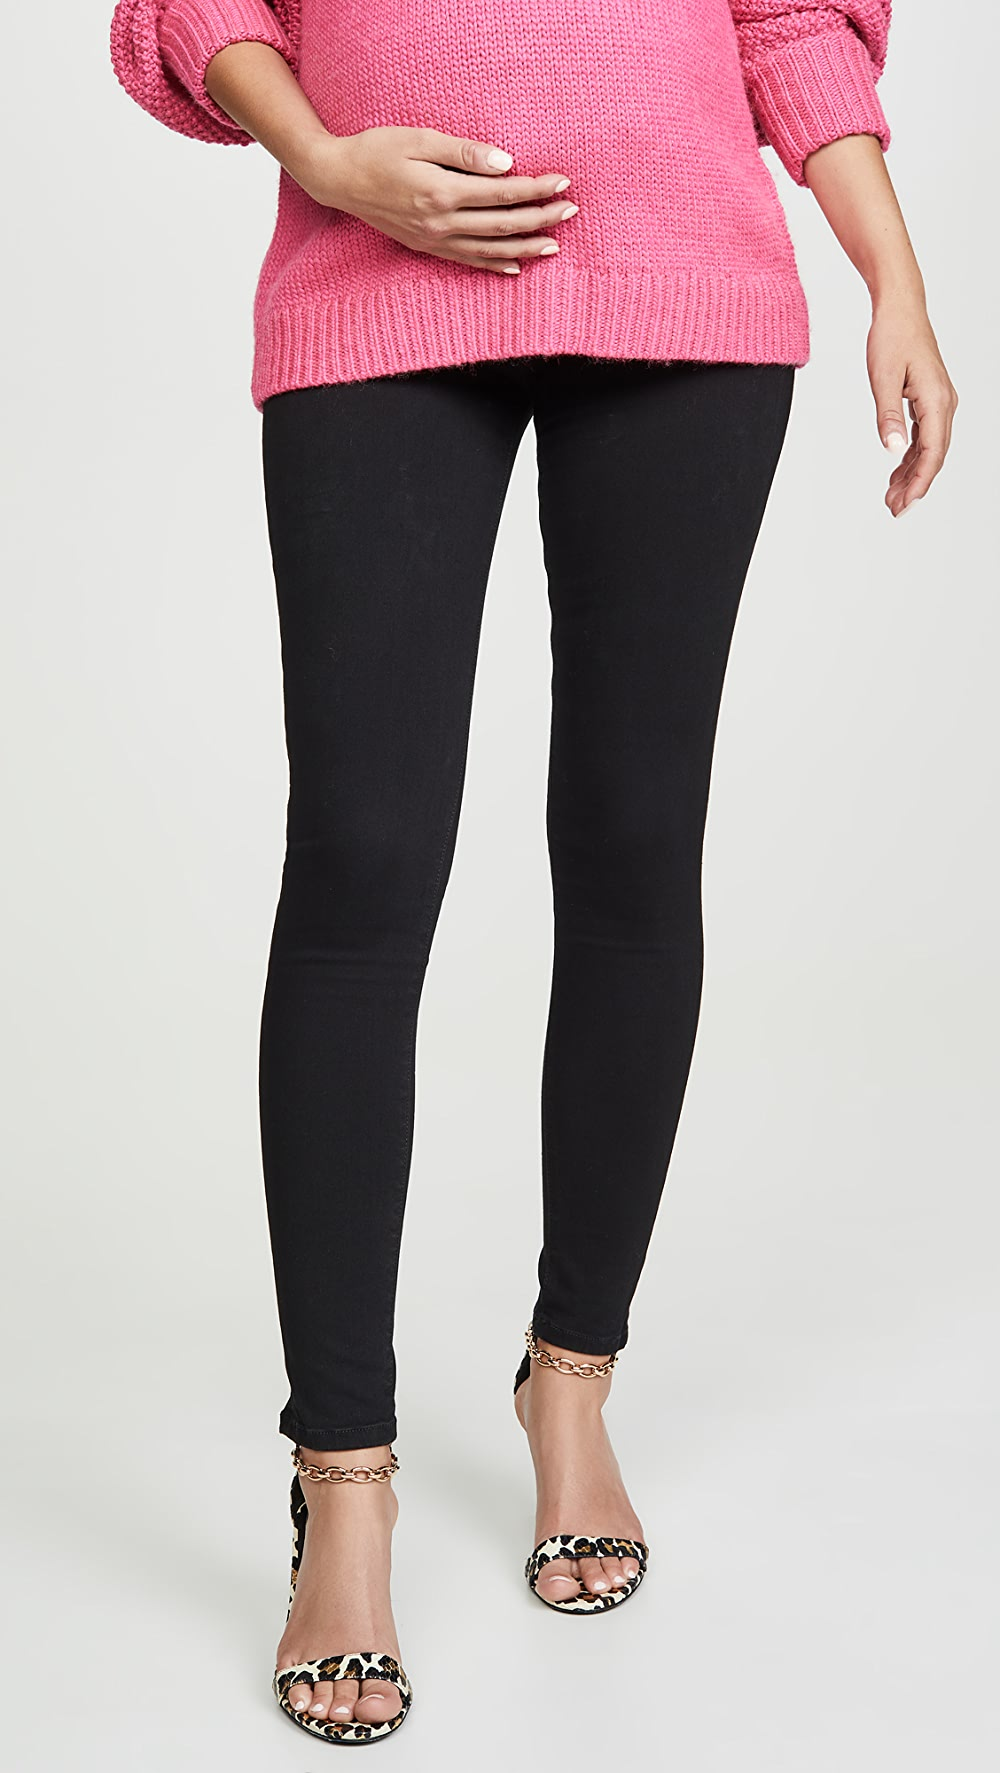 Just Joe's Jeans - The Icon Skinny Maternity Jeans Fancy Colours